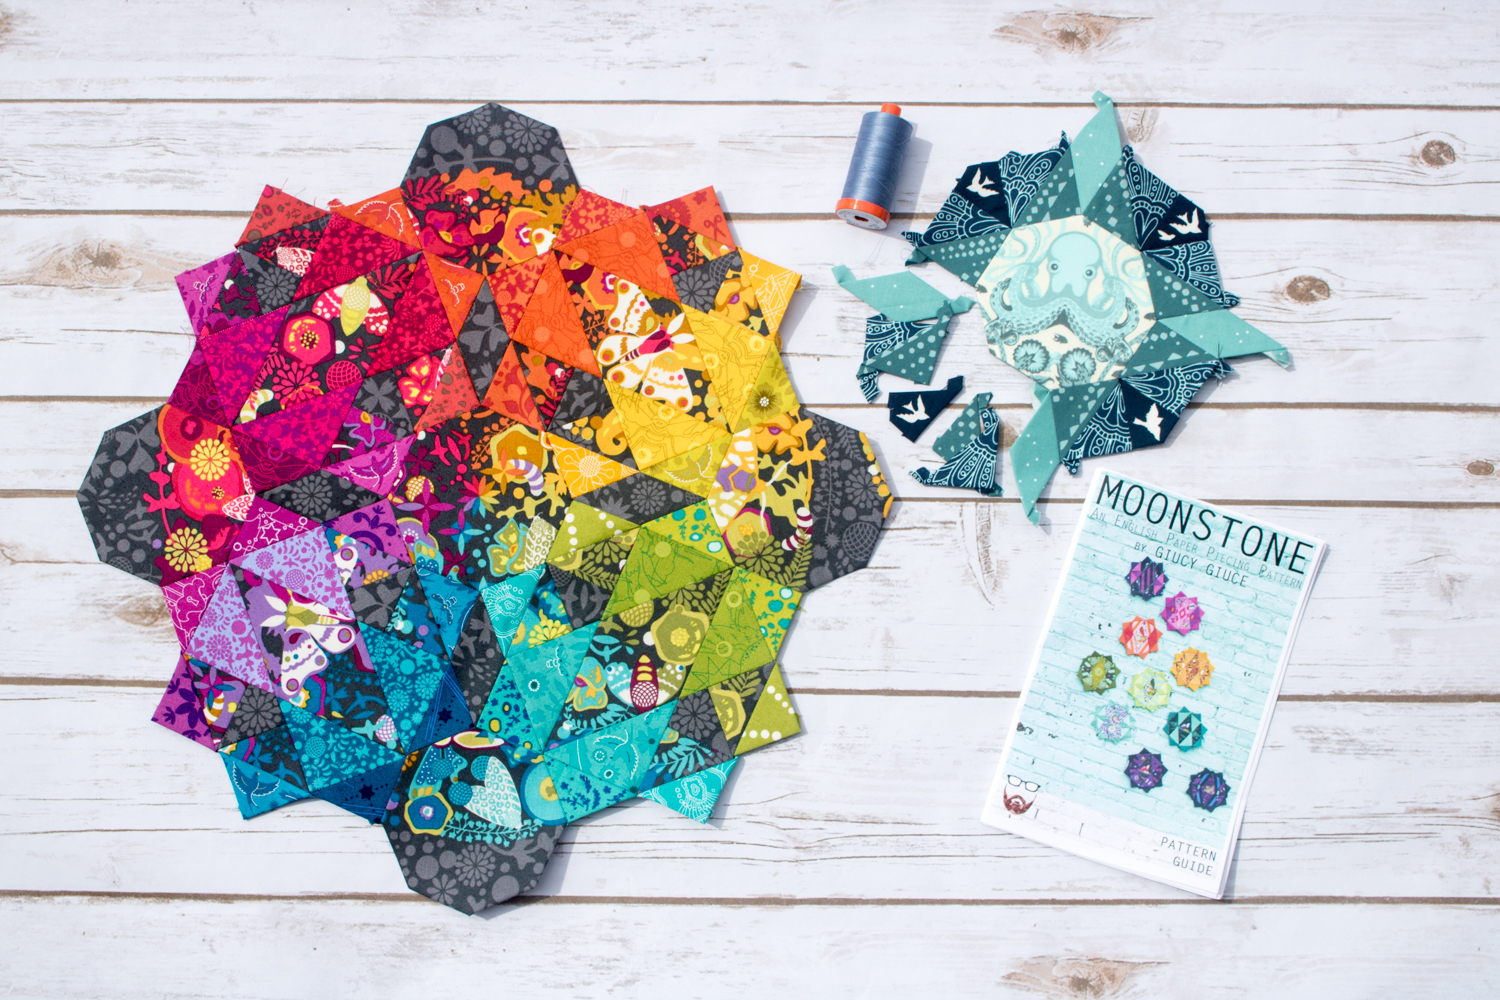 moonstone madness giucy giuce epp kit pattern